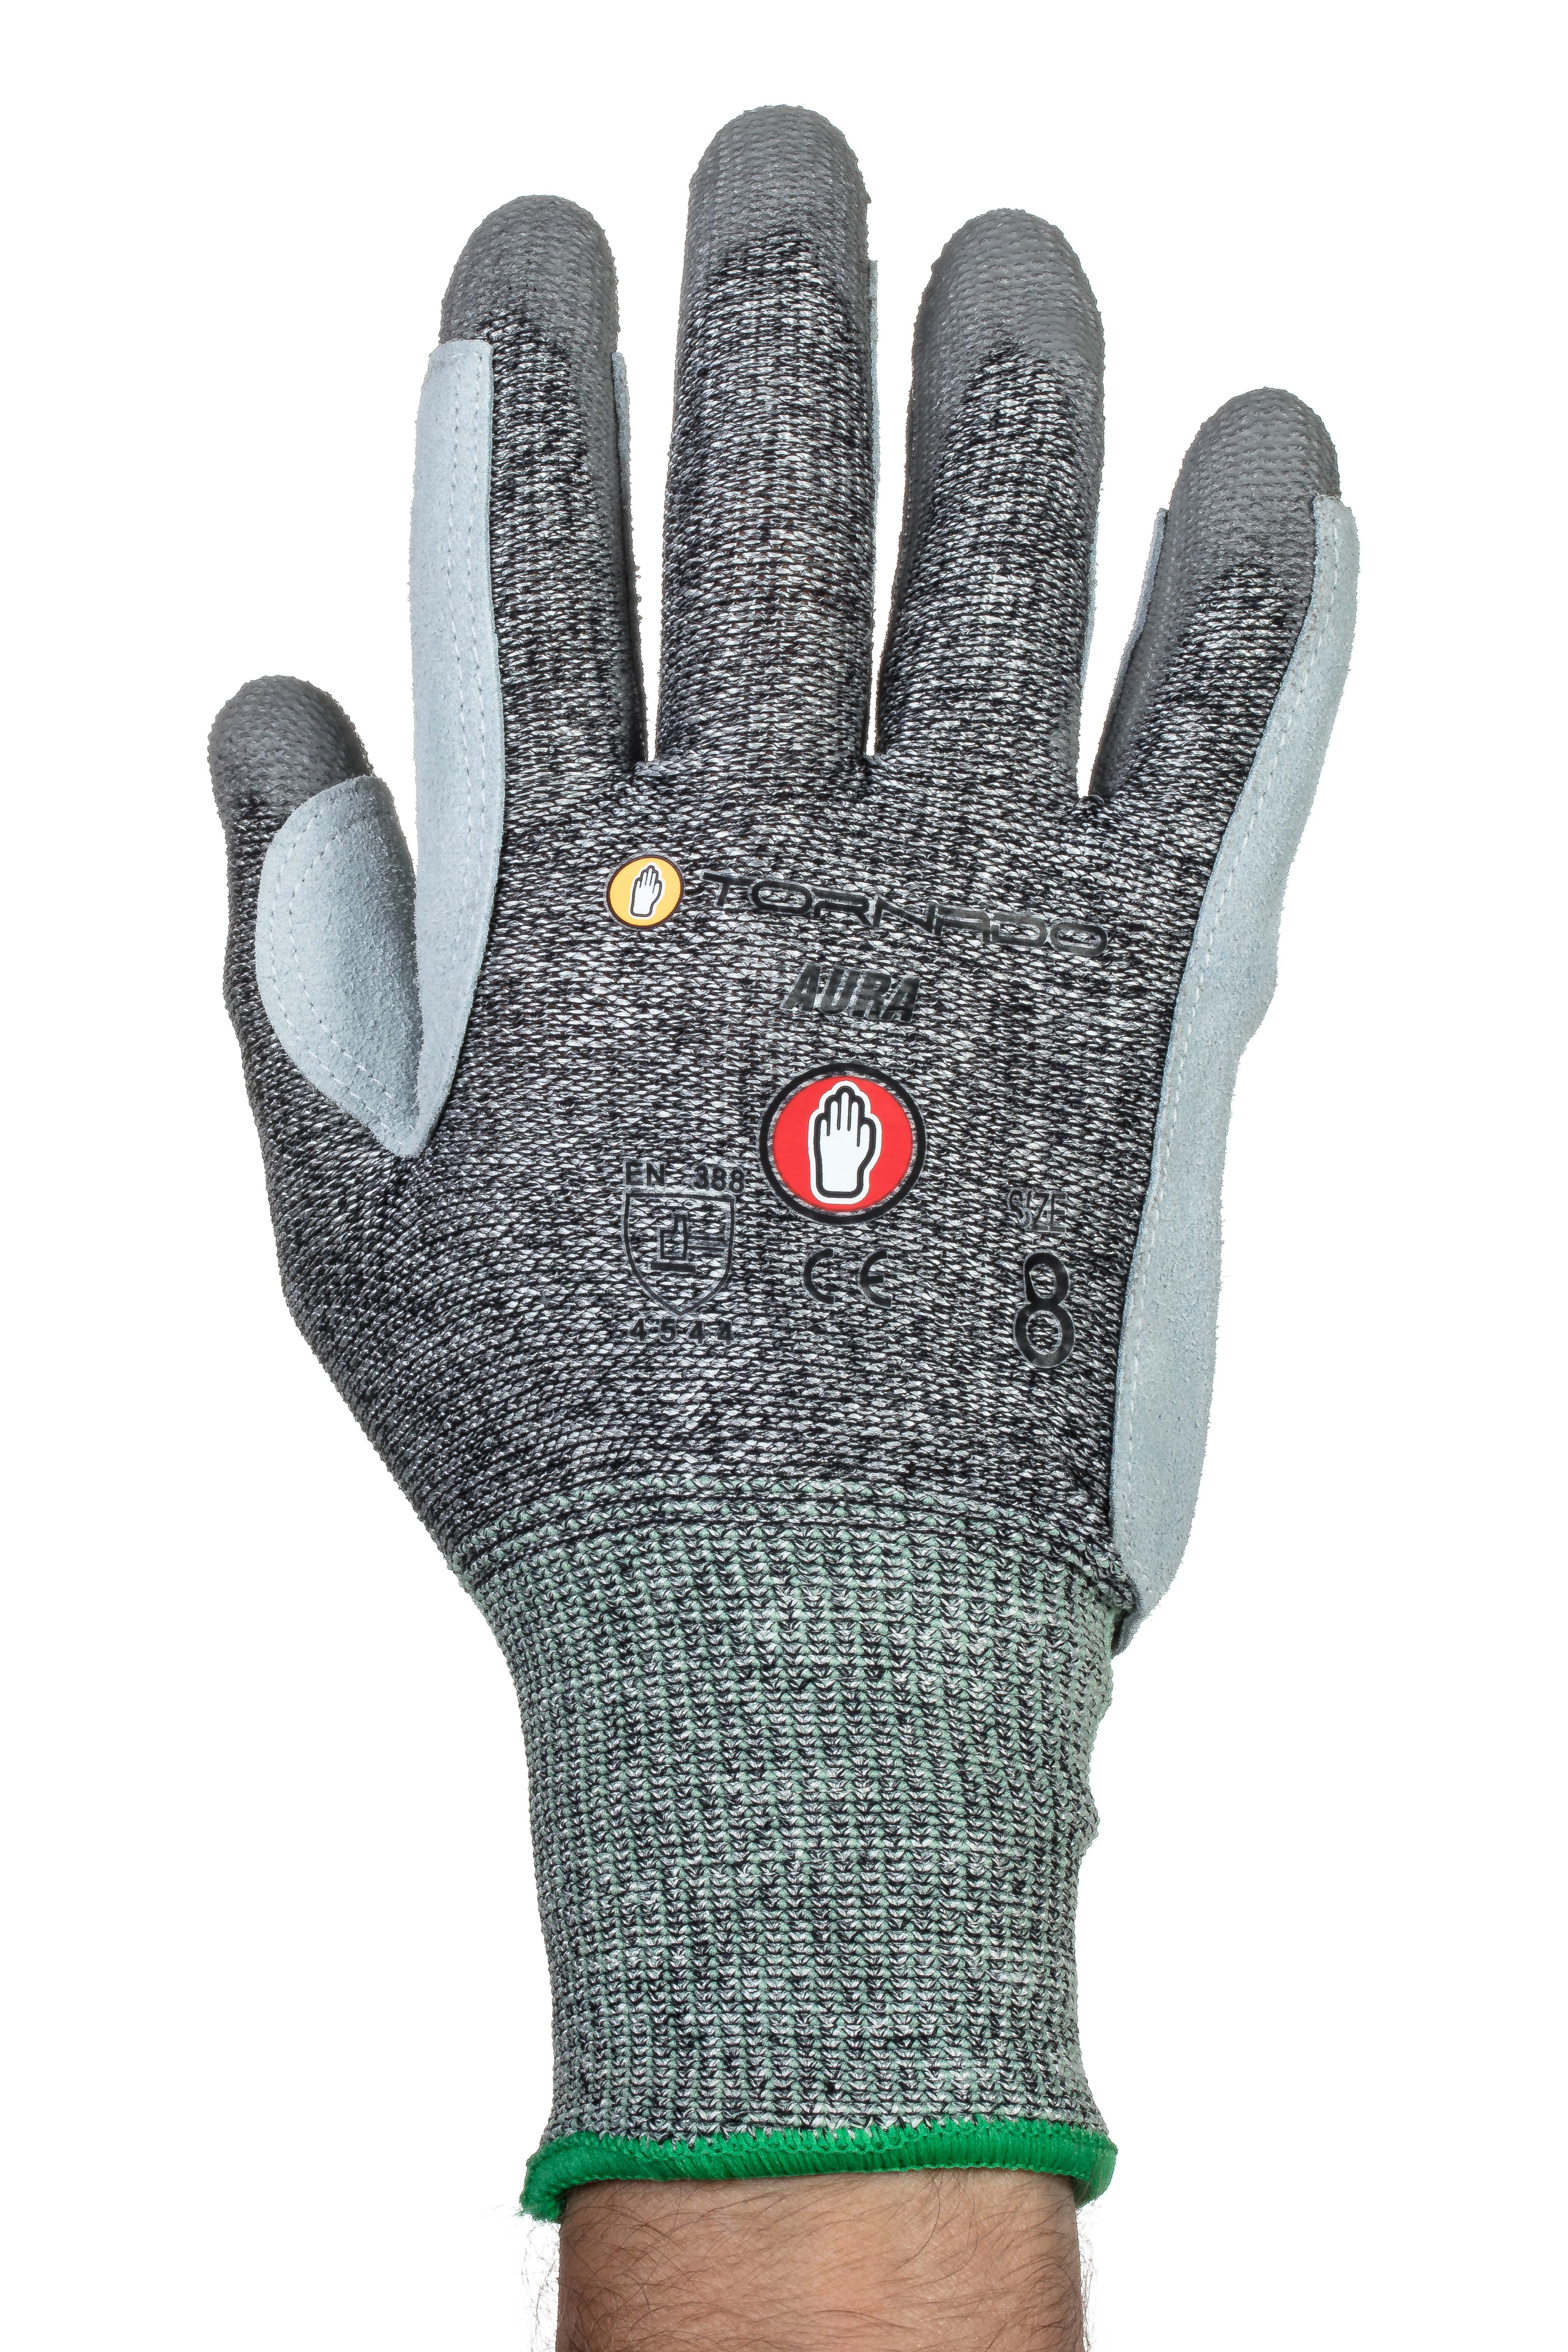 TORNADO Aura Kevlar Gloves Cut Level 5 - Medium Size: 8 Leather palm for maximum protection